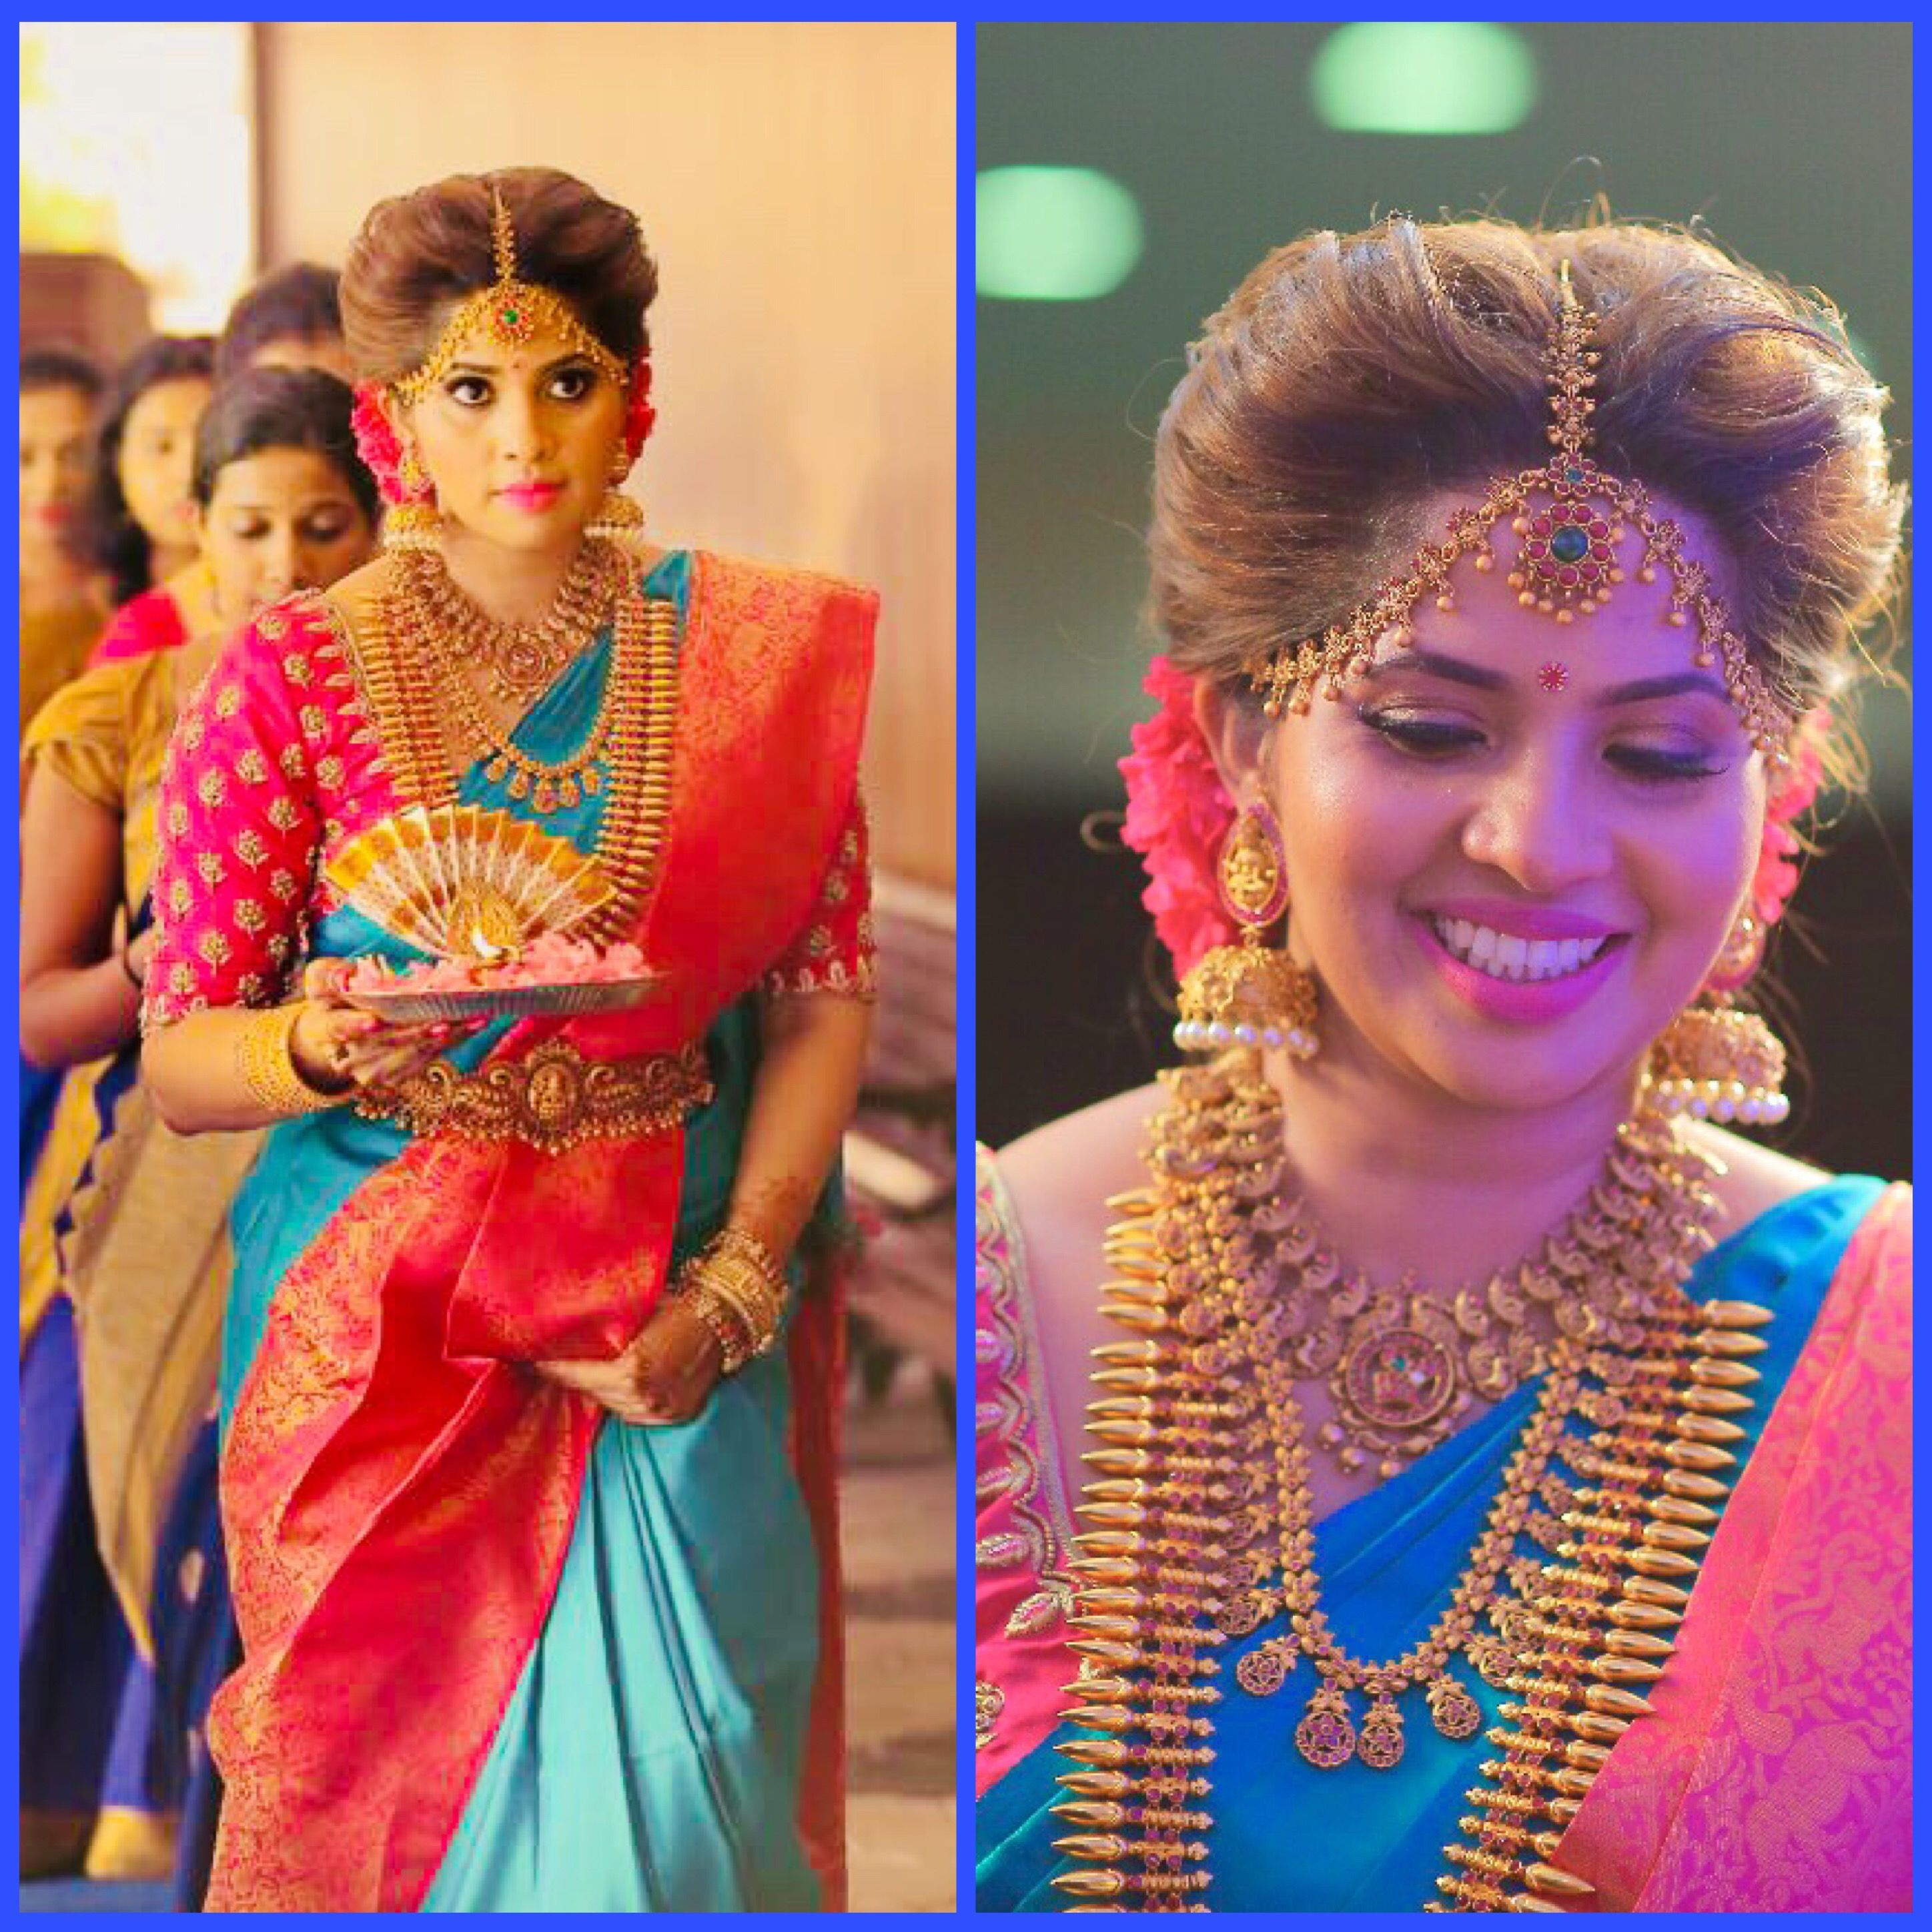 Devika Madhavan In A Peacock Blue Kanjeevaram Saree Wedding